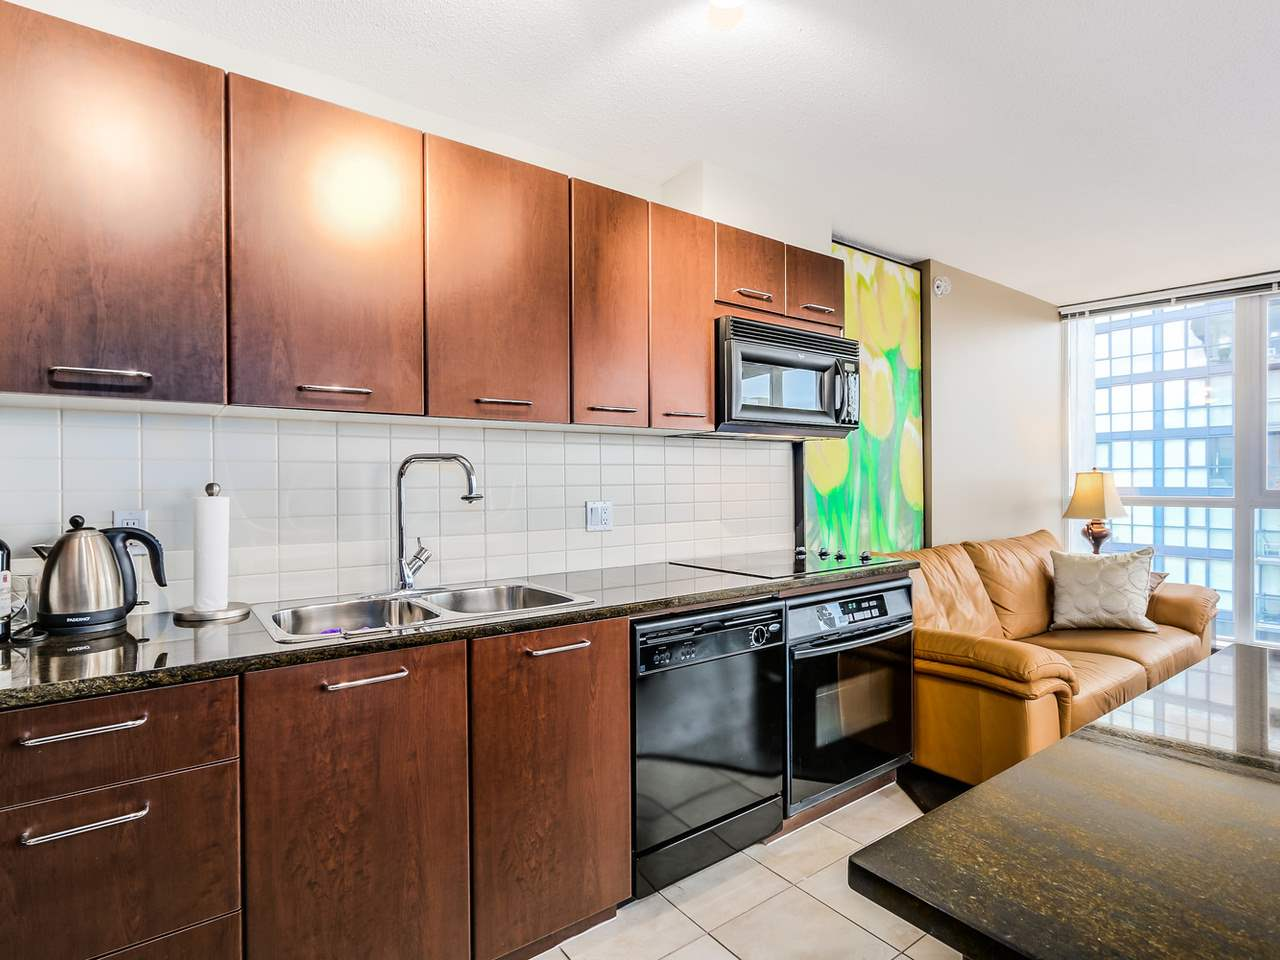 Photo 7: 2308 1155 SEYMOUR STREET in Vancouver: Downtown VW Condo for sale (Vancouver West)  : MLS® # R2026499